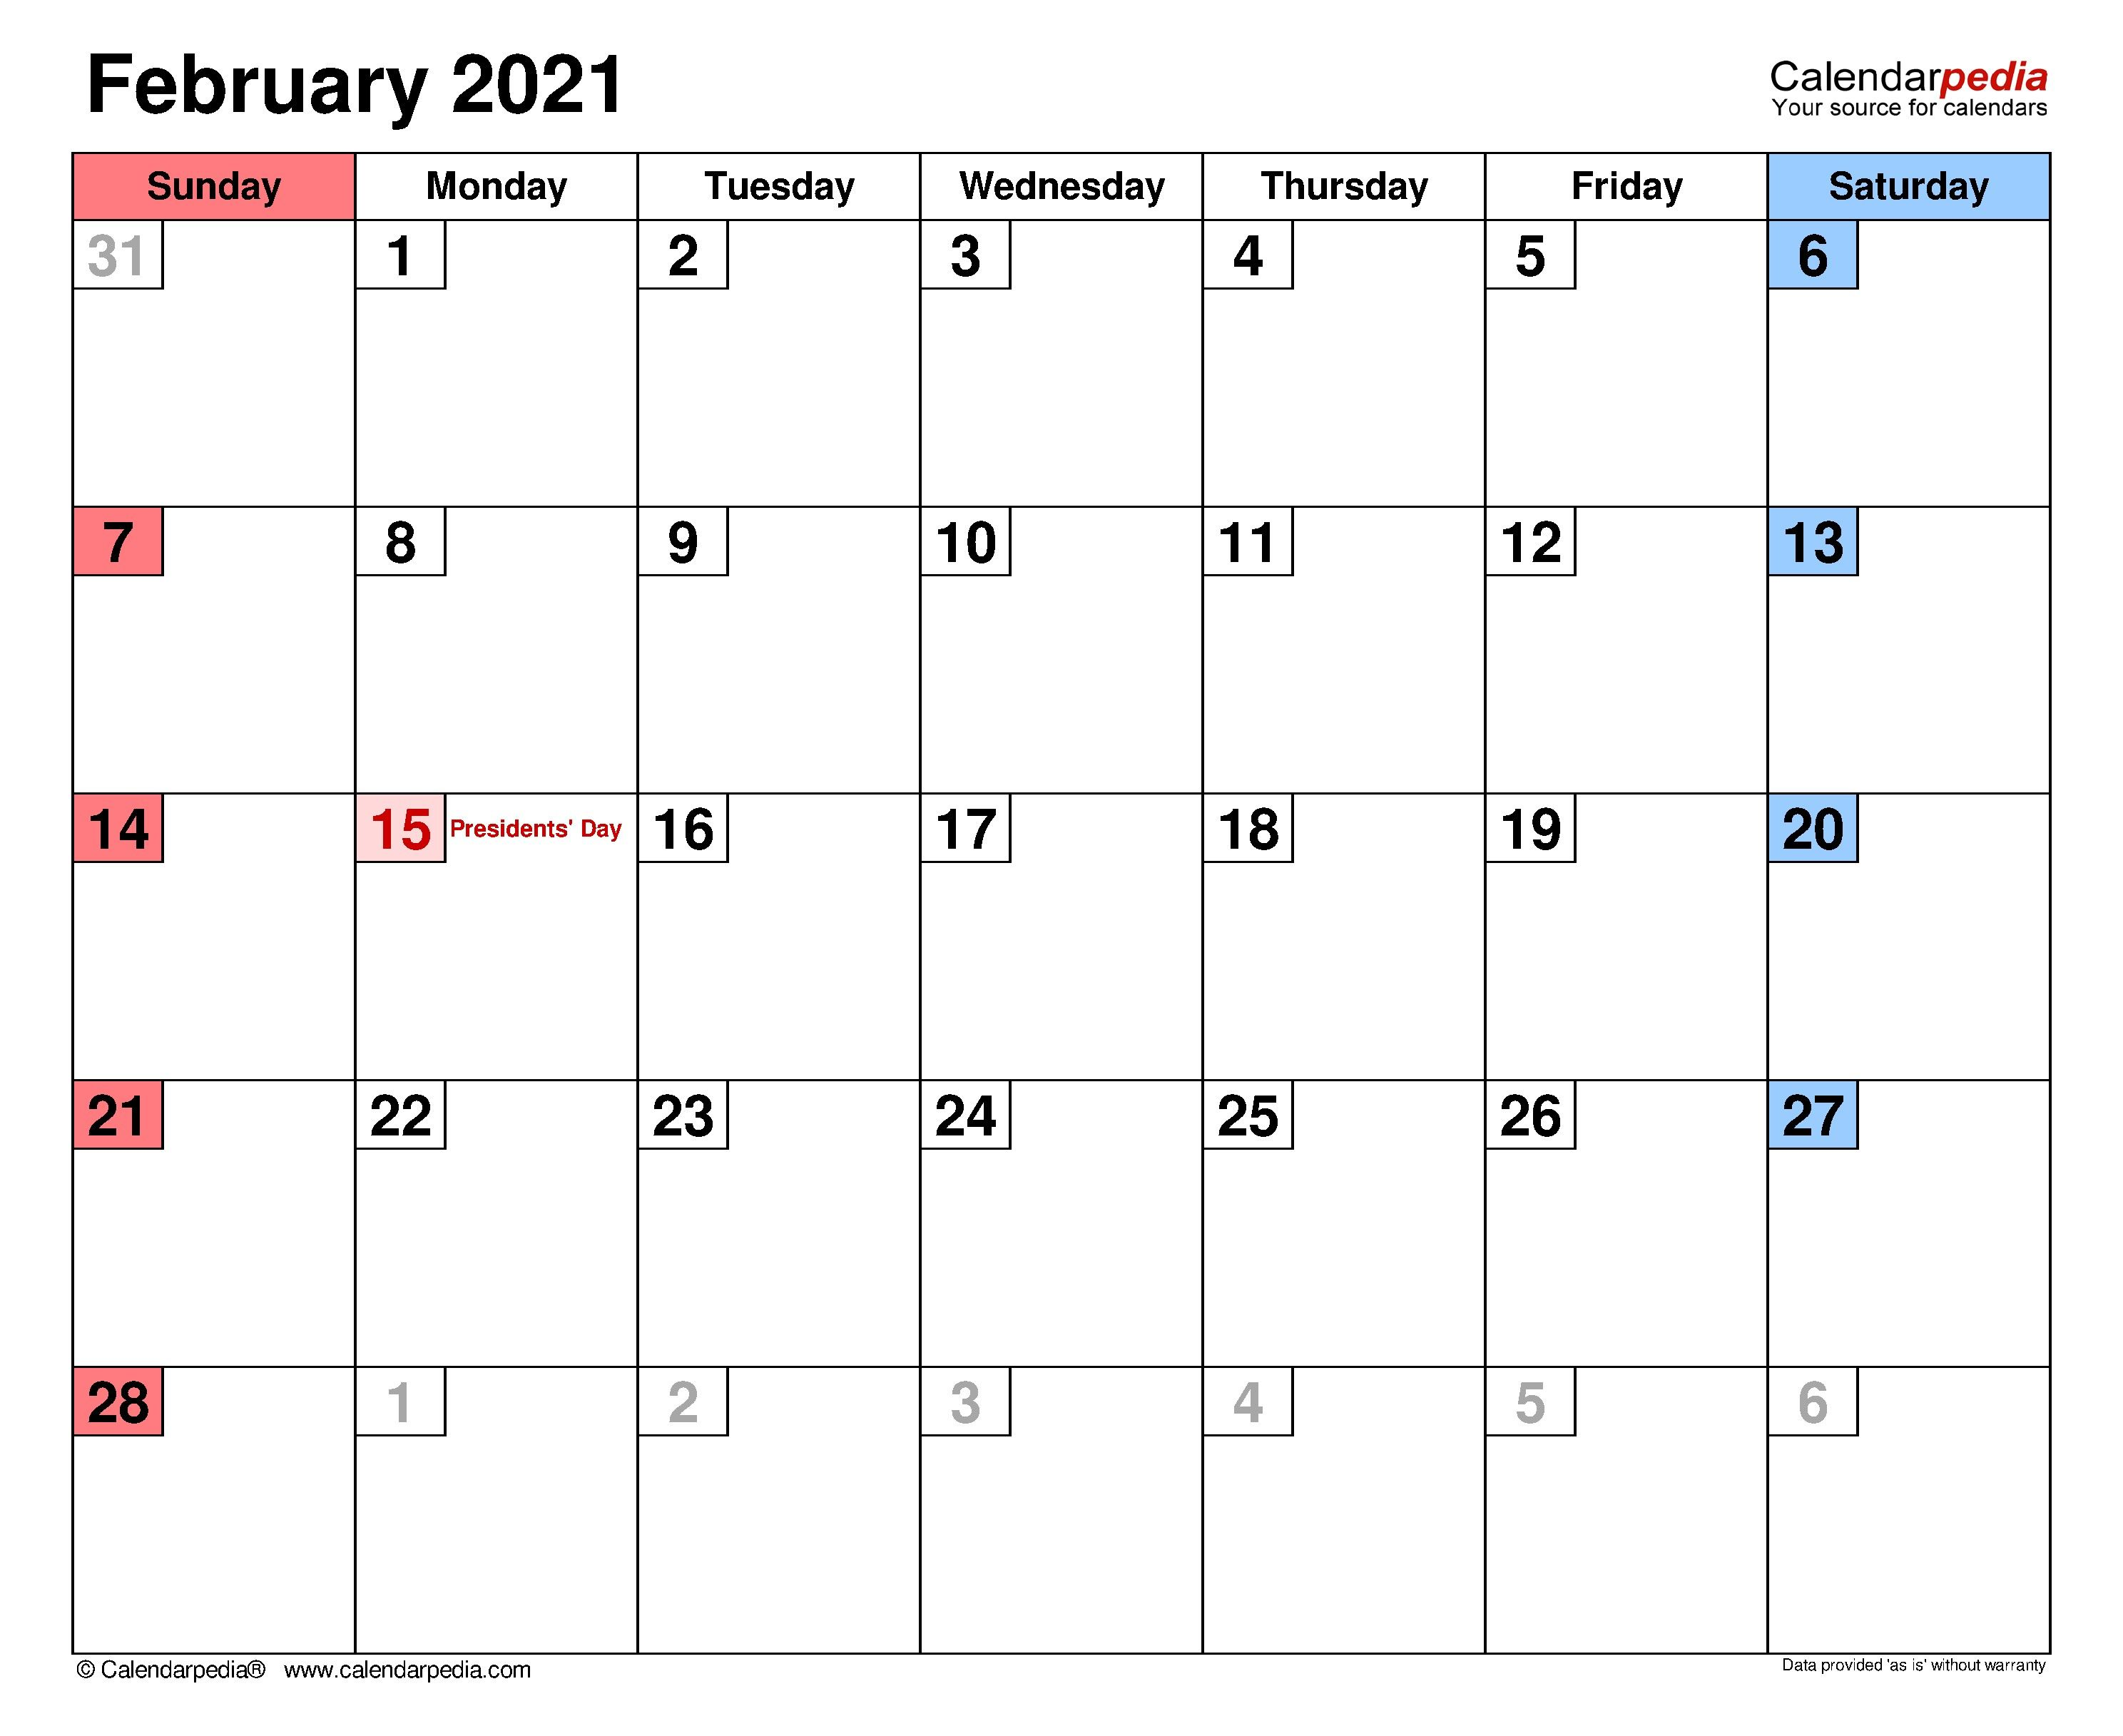 February 2021 Calendar With Canada Flag In 2020 Calendar Template 2020 Calendar Template 2021 Calendar